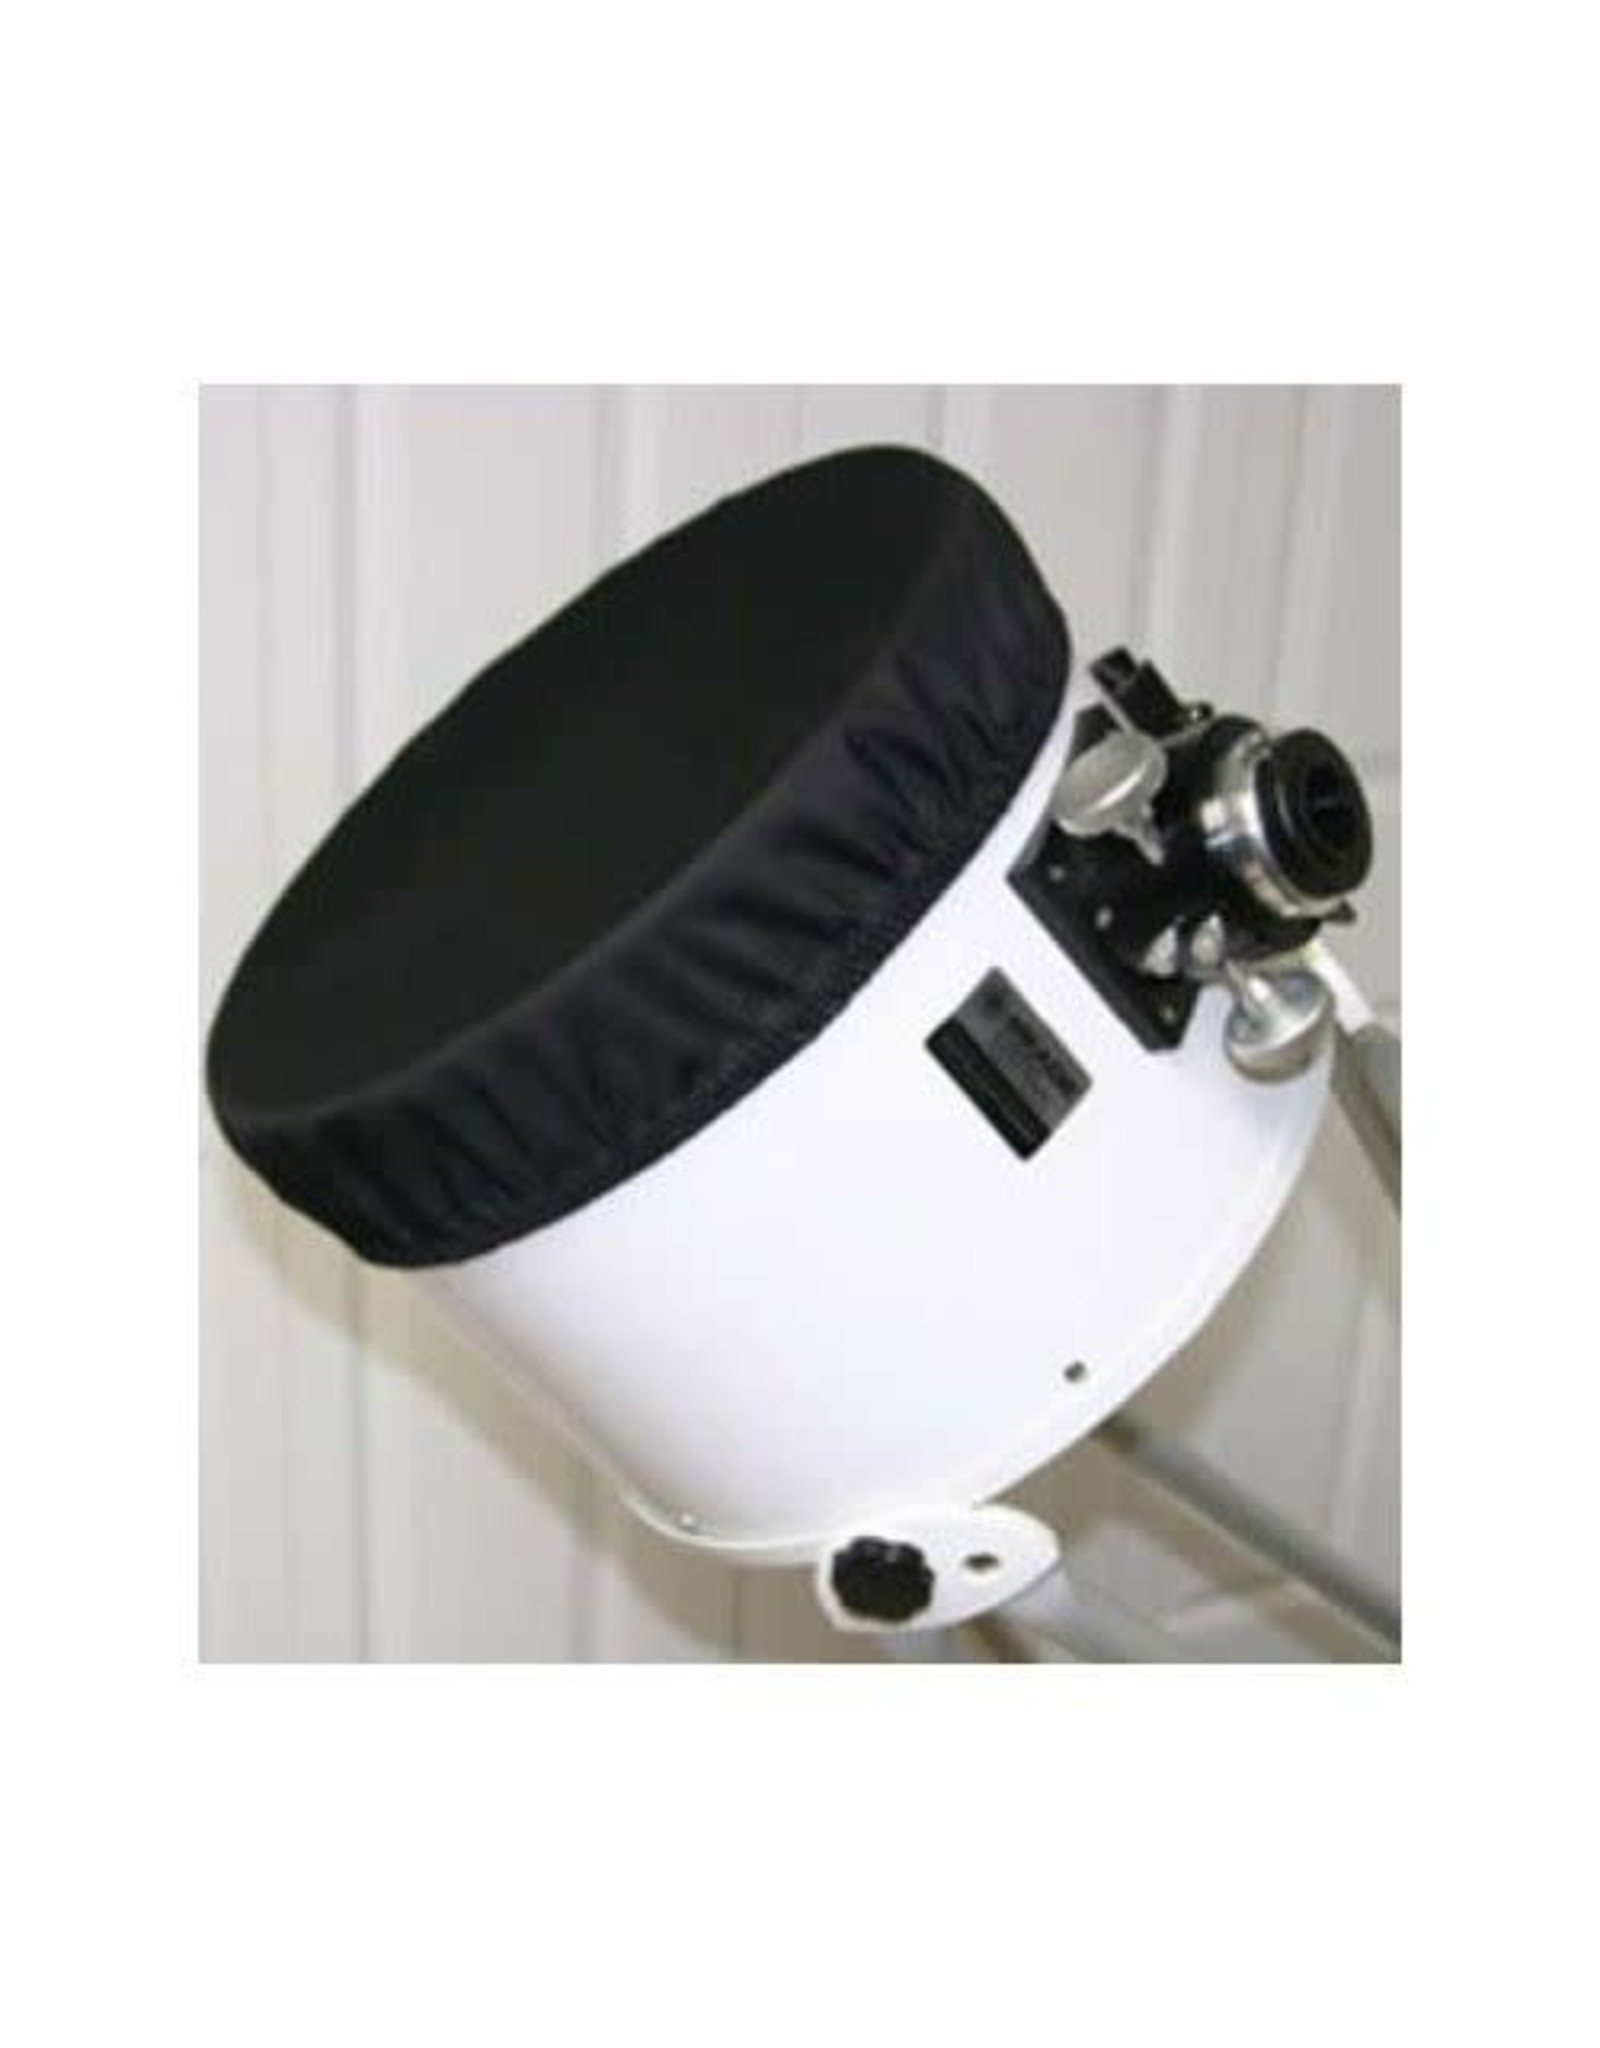 """Astrozap AstroZap 20""""Dust Cover for Telescopes or Dew Shields"""